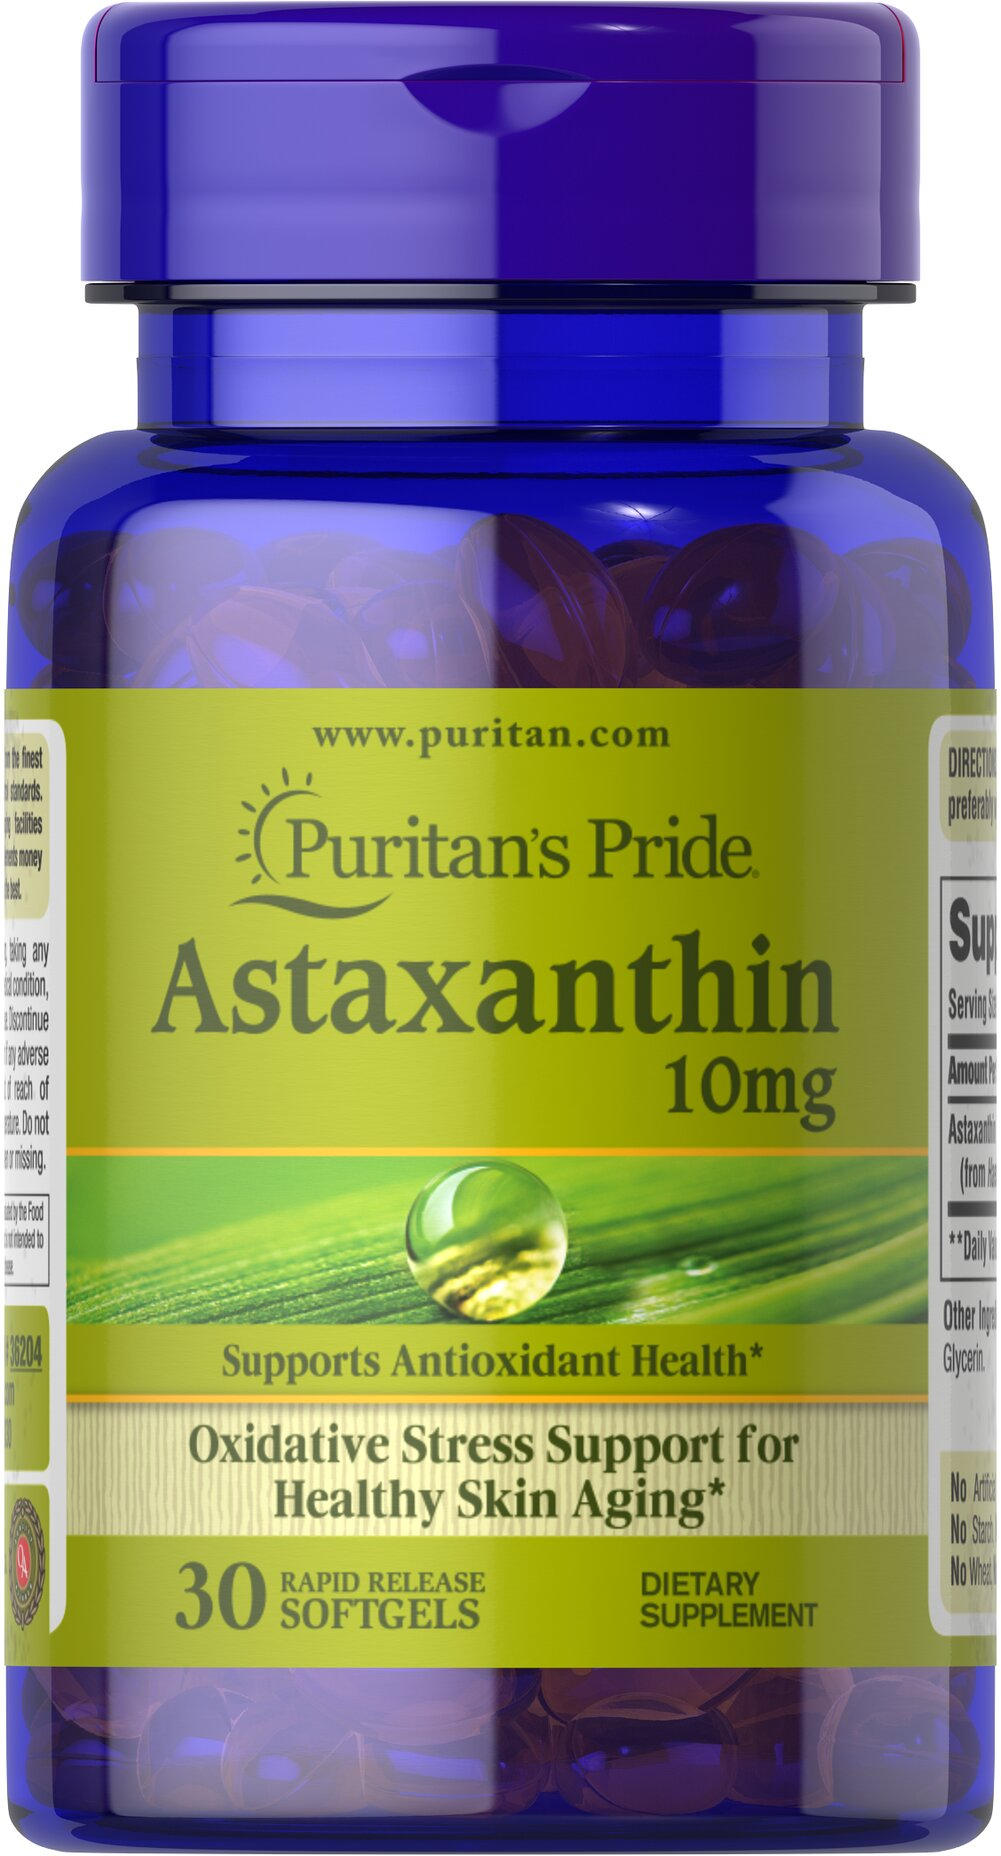 Astaxanthin 10 mg <p>Powerful Antioxidant**</p><p>Suited for Stressful Lifestyles**</p><p>Astaxanthin promotes antioxidant health, which helps fight the cell damaging free radicals that can lead to oxidative stress which may contribute to the premature aging of cells.**</p> 30 Softgels 10 mg $29.59